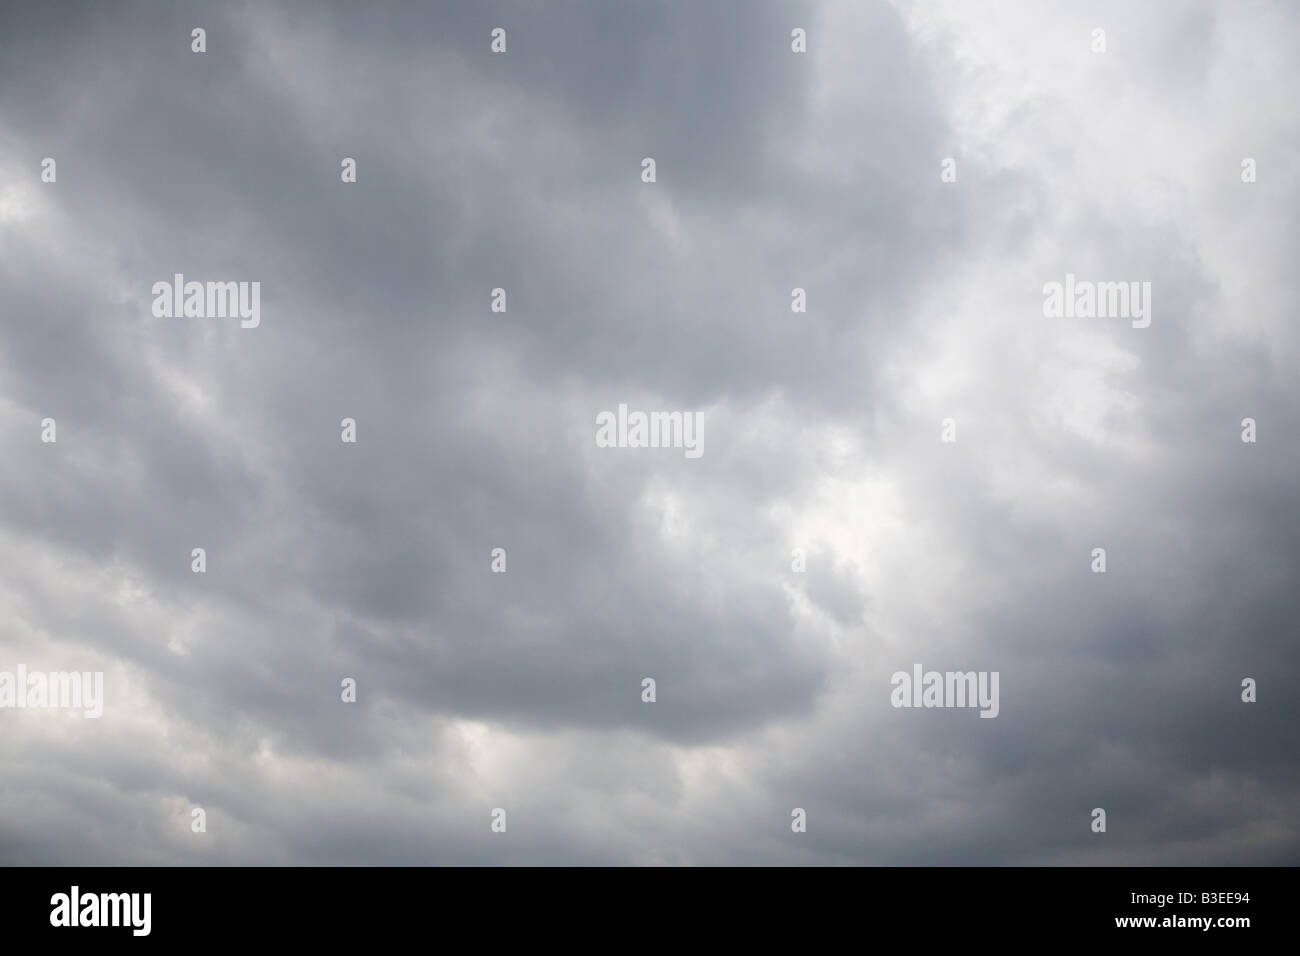 Full frame image of a cloudy sky - Stock Image